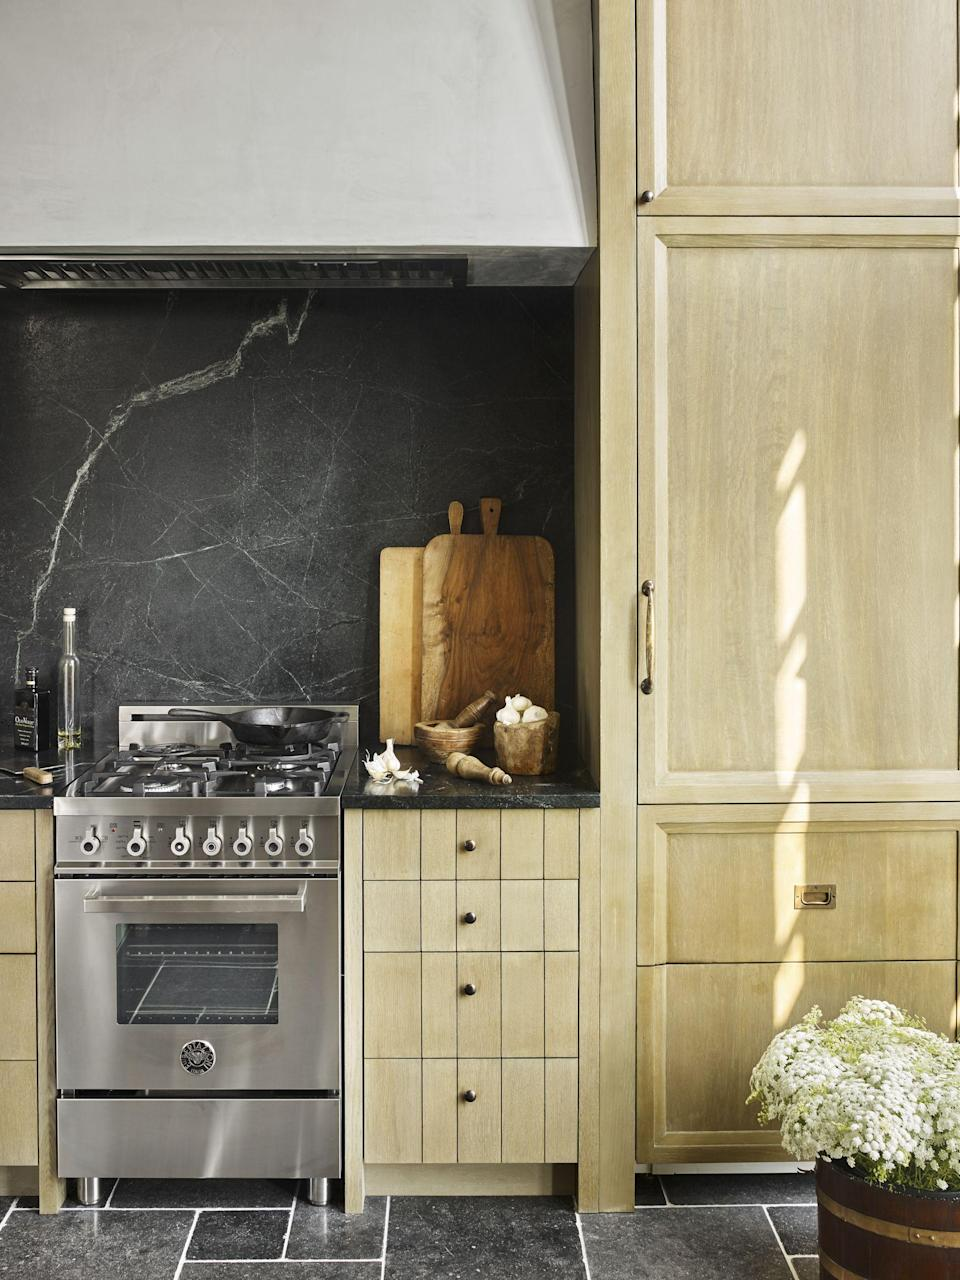 """<p>When planning a full kitchen renovation, cabinet design is one of the most important choices you will make—especially as cabinetry is typically the single biggest investment you'll make. Whether or not your kitchen cabinets are well-designed and <a href=""""https://www.veranda.com/decorating-ideas/g35004579/kitchen-organization-ideas/"""" rel=""""nofollow noopener"""" target=""""_blank"""" data-ylk=""""slk:well-organized"""" class=""""link rapid-noclick-resp"""">well-organized</a> can really make or break your experience in the kitchen—especially if you have a <a href=""""https://www.veranda.com/decorating-ideas/g34899885/small-kitchens/"""" rel=""""nofollow noopener"""" target=""""_blank"""" data-ylk=""""slk:small kitchen"""" class=""""link rapid-noclick-resp"""">small kitchen</a>—and a cabinet design mistake is not an easy one to remedy. Furthermore, there are endless cabinet styles and designs to choose from, making the design process a little harder to navigate. </p><p>We culled through our archives <a href=""""https://www.veranda.com/decorating-ideas/color-ideas/g27147074/white-kitchen-ideas/"""" rel=""""nofollow noopener"""" target=""""_blank"""" data-ylk=""""slk:white kitchens"""" class=""""link rapid-noclick-resp"""">white kitchens</a>, <a href=""""https://www.veranda.com/decorating-ideas/color-ideas/g28700927/kitchen-paint-colors/"""" rel=""""nofollow noopener"""" target=""""_blank"""" data-ylk=""""slk:colorful kitchens"""" class=""""link rapid-noclick-resp"""">colorful kitchens</a>, <a href=""""https://www.veranda.com/decorating-ideas/g34955481/modern-kitchens/"""" rel=""""nofollow noopener"""" target=""""_blank"""" data-ylk=""""slk:modern kitchens"""" class=""""link rapid-noclick-resp"""">modern kitchens</a>, farmhouse kitchens, and every other style out there in search of the most distinctive kitchen cabinet ideas from designers all over the world. We even looked at <a href=""""https://www.veranda.com/decorating-ideas/g28837805/home-bar-ideas/"""" rel=""""nofollow noopener"""" target=""""_blank"""" data-ylk=""""slk:our best home bar ideas"""" class=""""link rapid-noclick-resp"""">our best home bar ideas</a>, as these inventive """